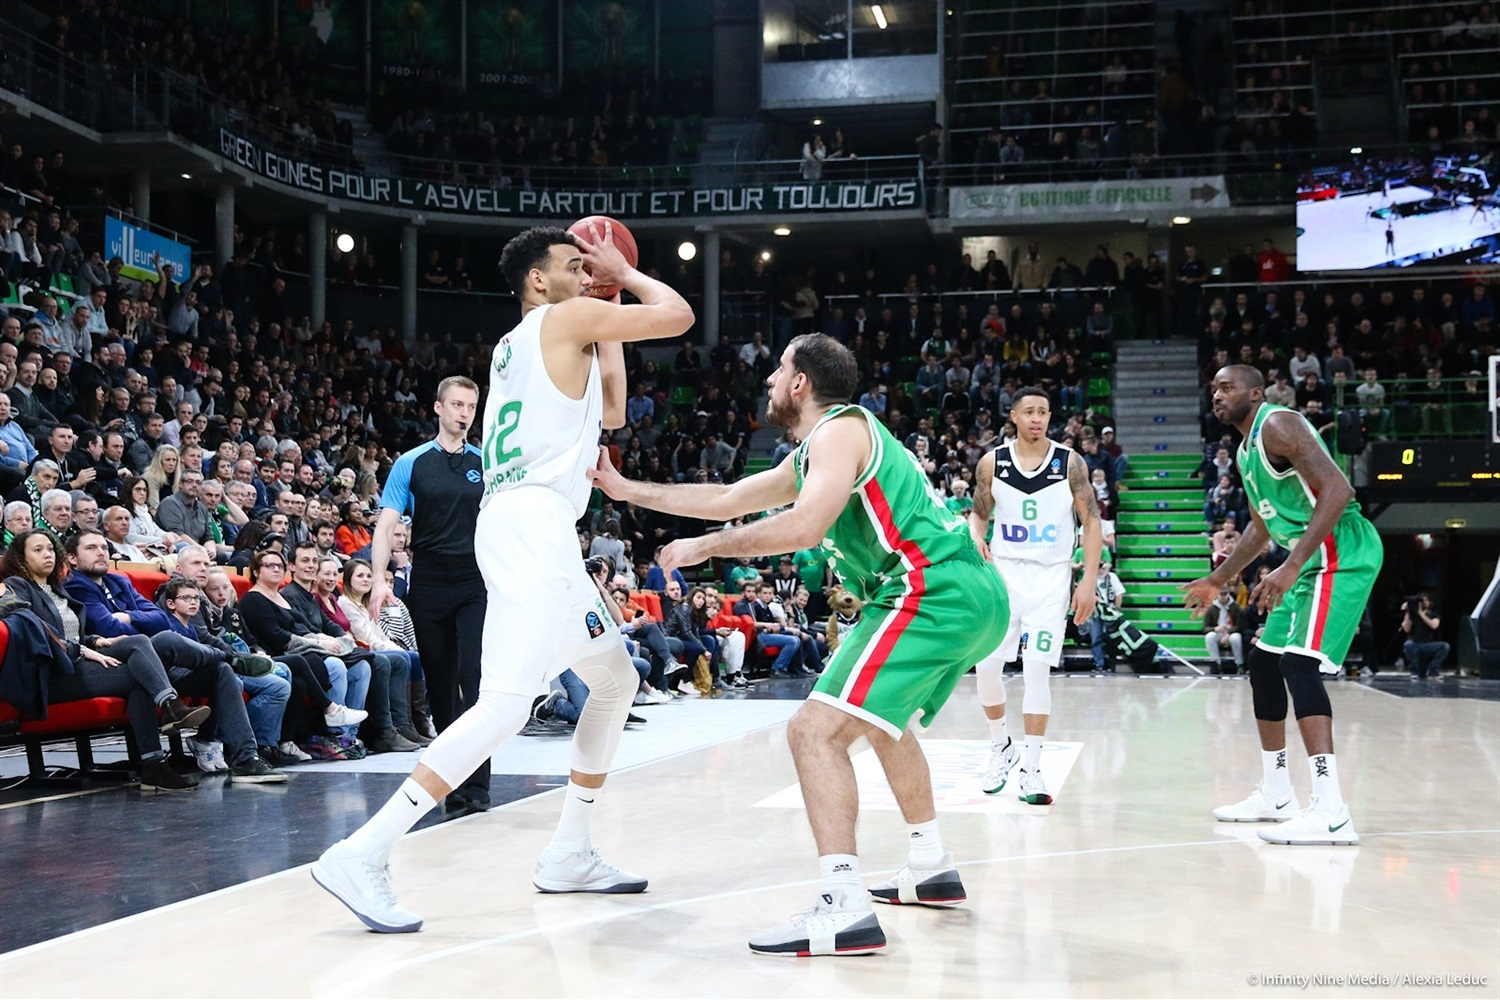 Amine Noua - ASVEL Villeurbanne (photo Asvel - infinity Nine Media - Alexia Leduc) - EC17